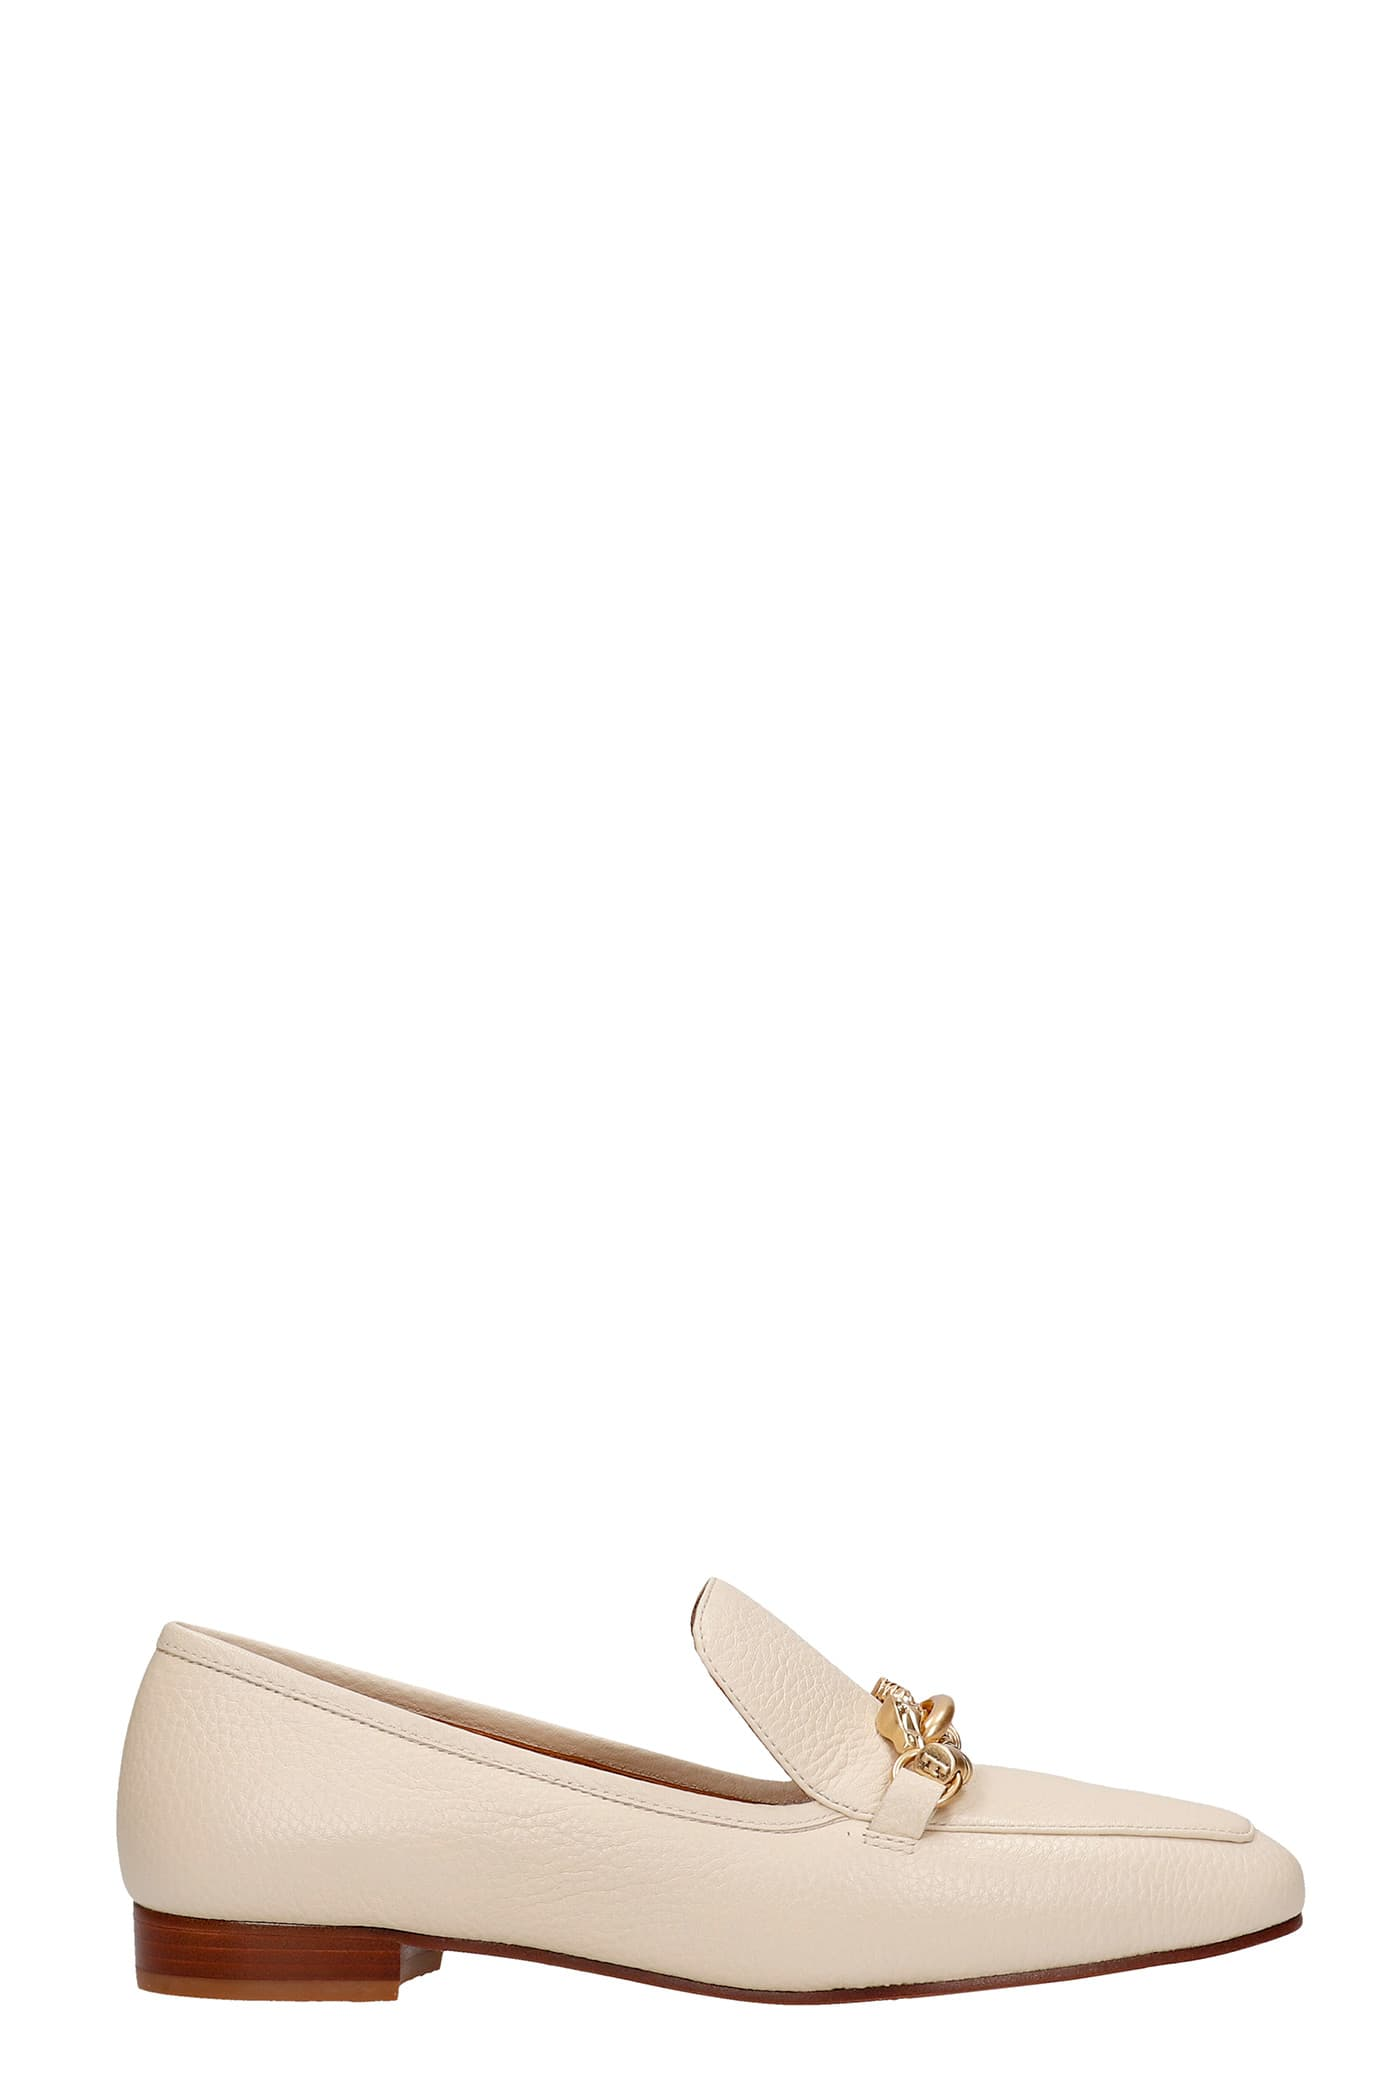 Tory Burch Jess Loafers In Beige Leather